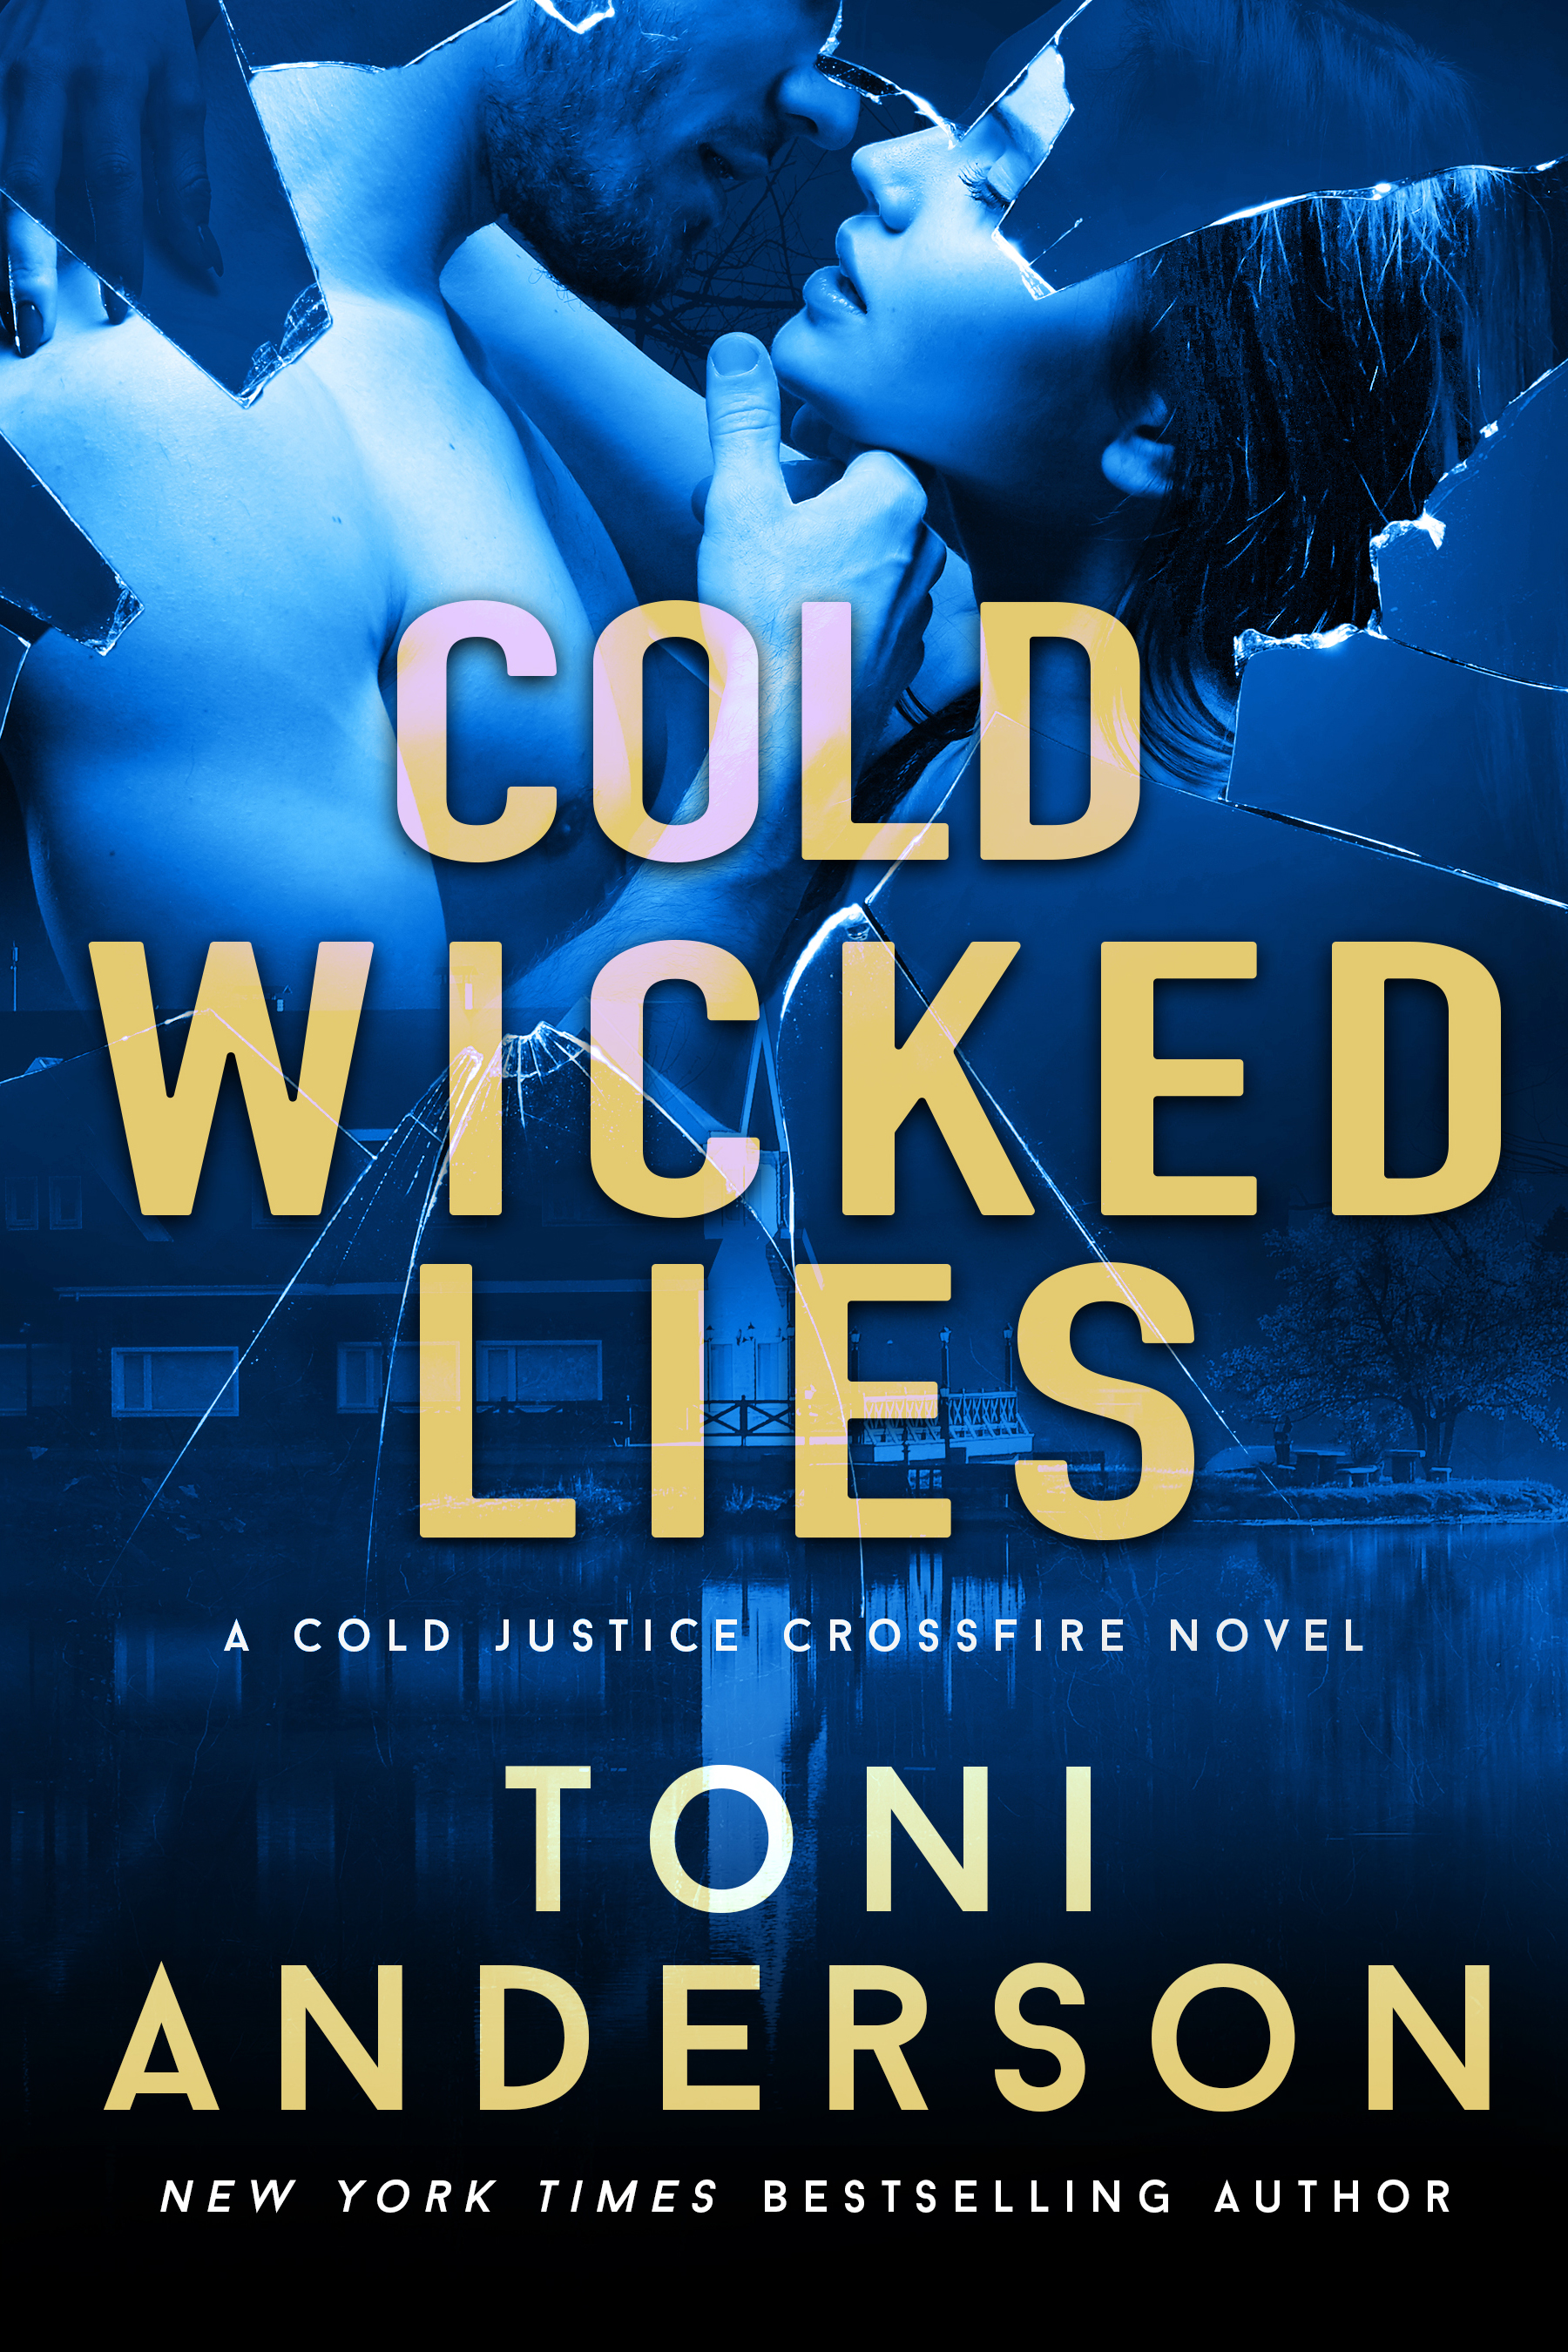 Toni Anderson - Cold Justice Crossfire 3 - Cold Wicked Lies